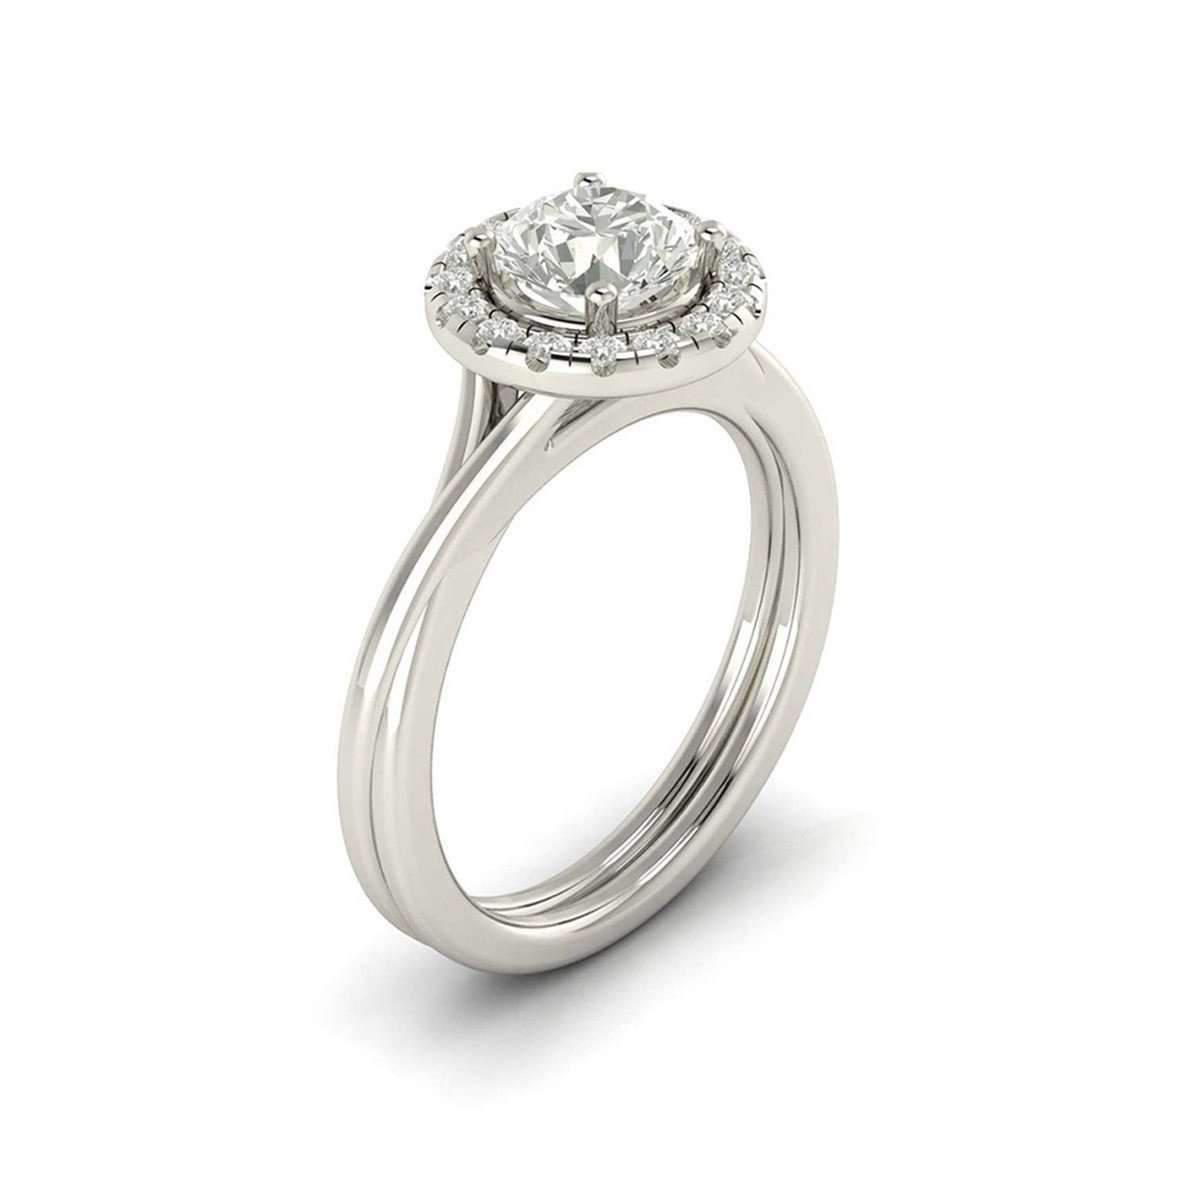 5Ine Jewels Crossover Shank Pave Halo Diamond Engagement Ring in Metallic